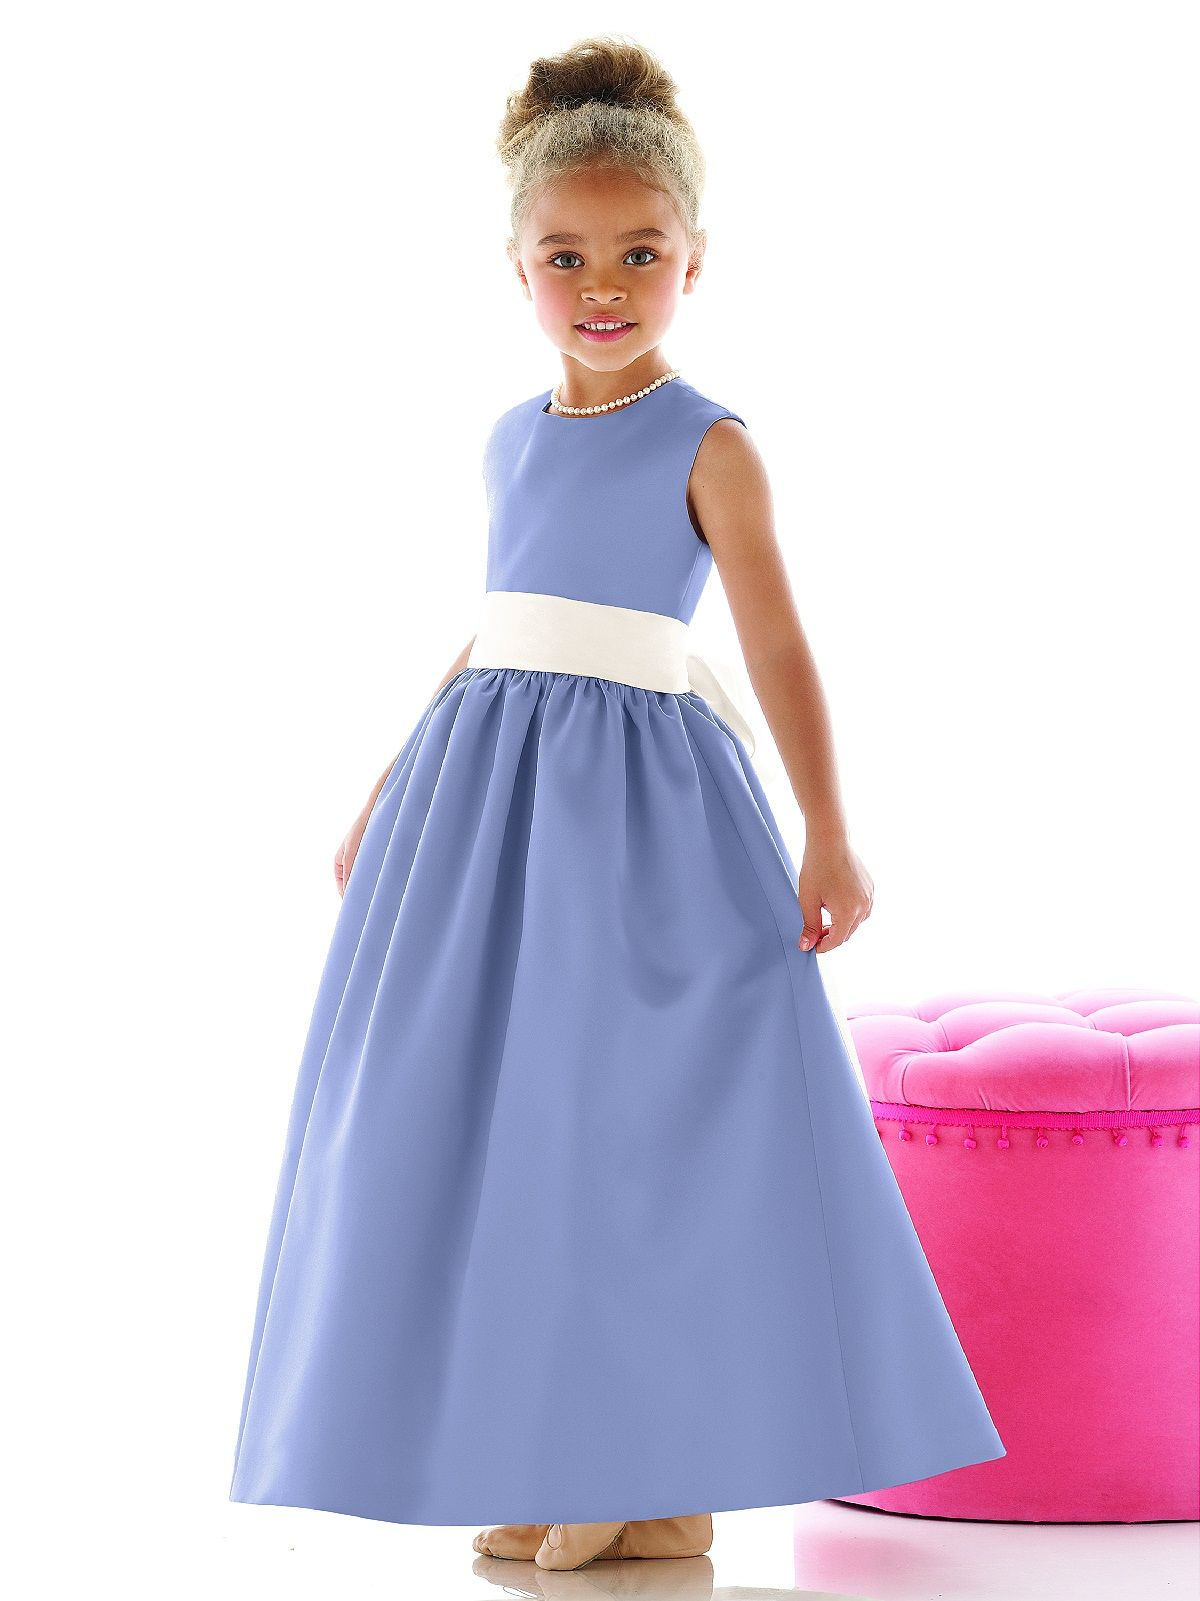 40bed9d1fdc Periwinkle dress and ivory sash for your little flower girl ...